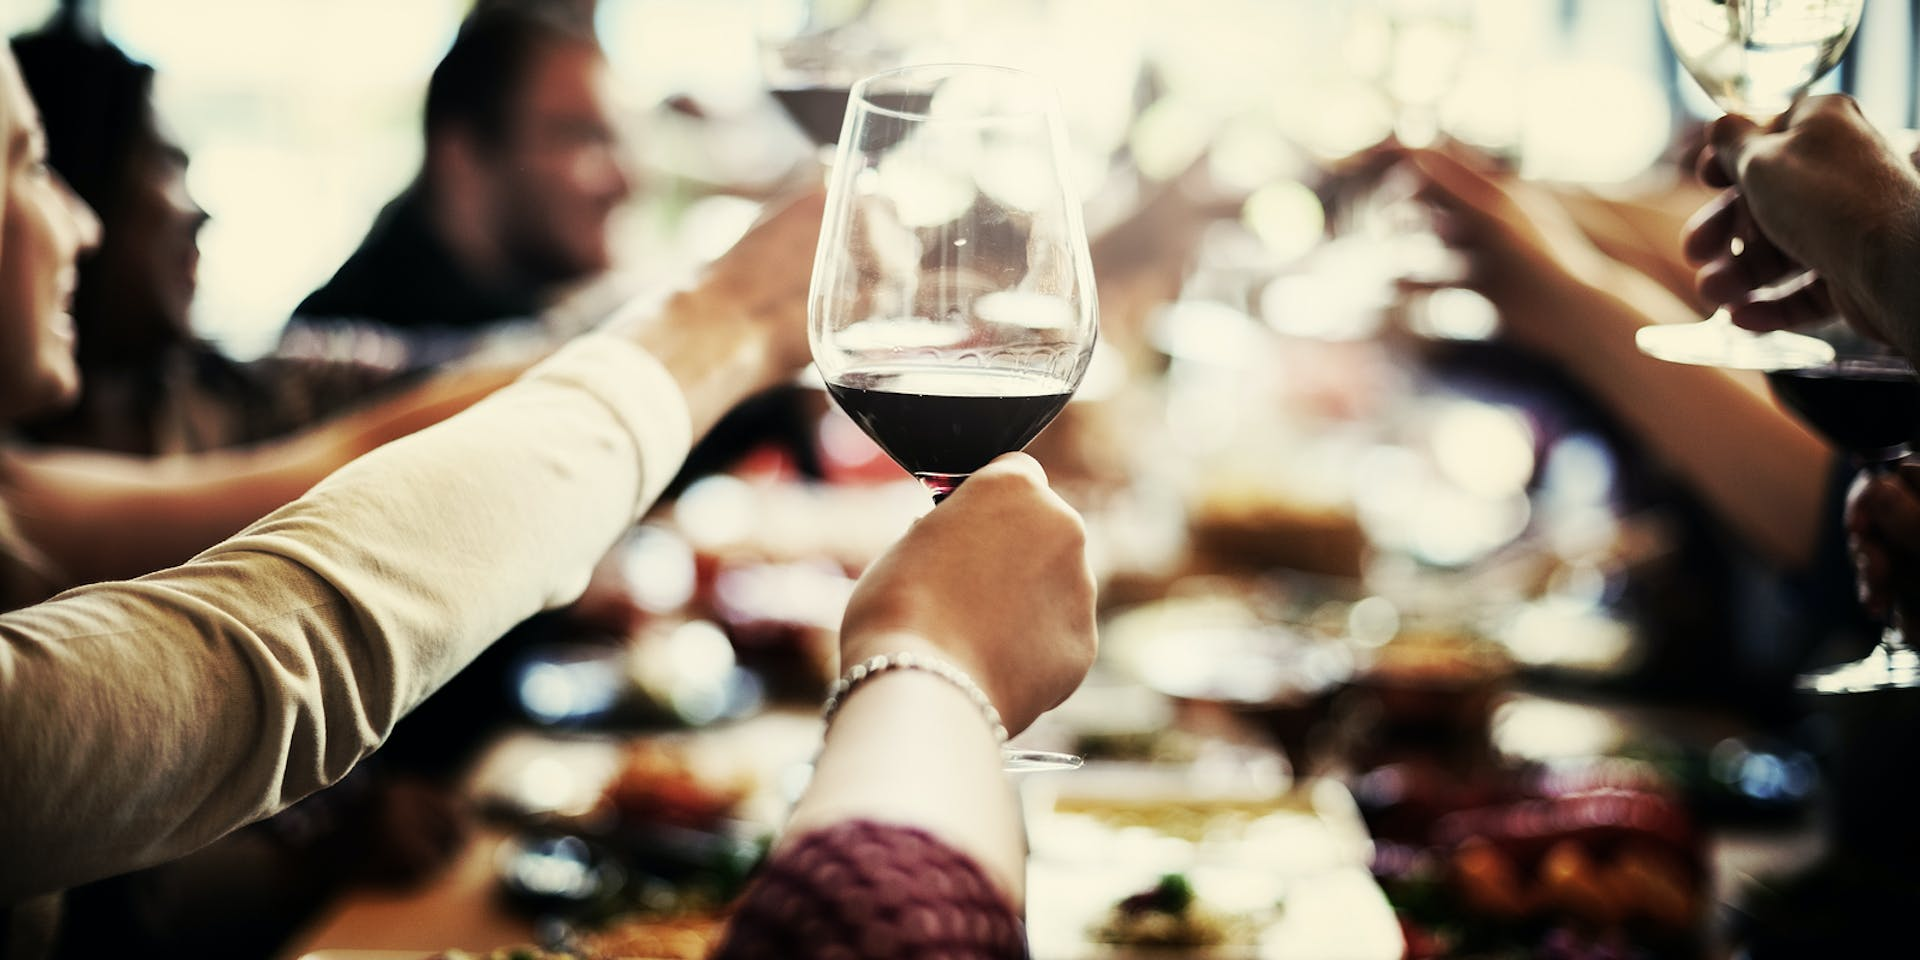 Group sitting around a table raising their wine glasses in a toast.